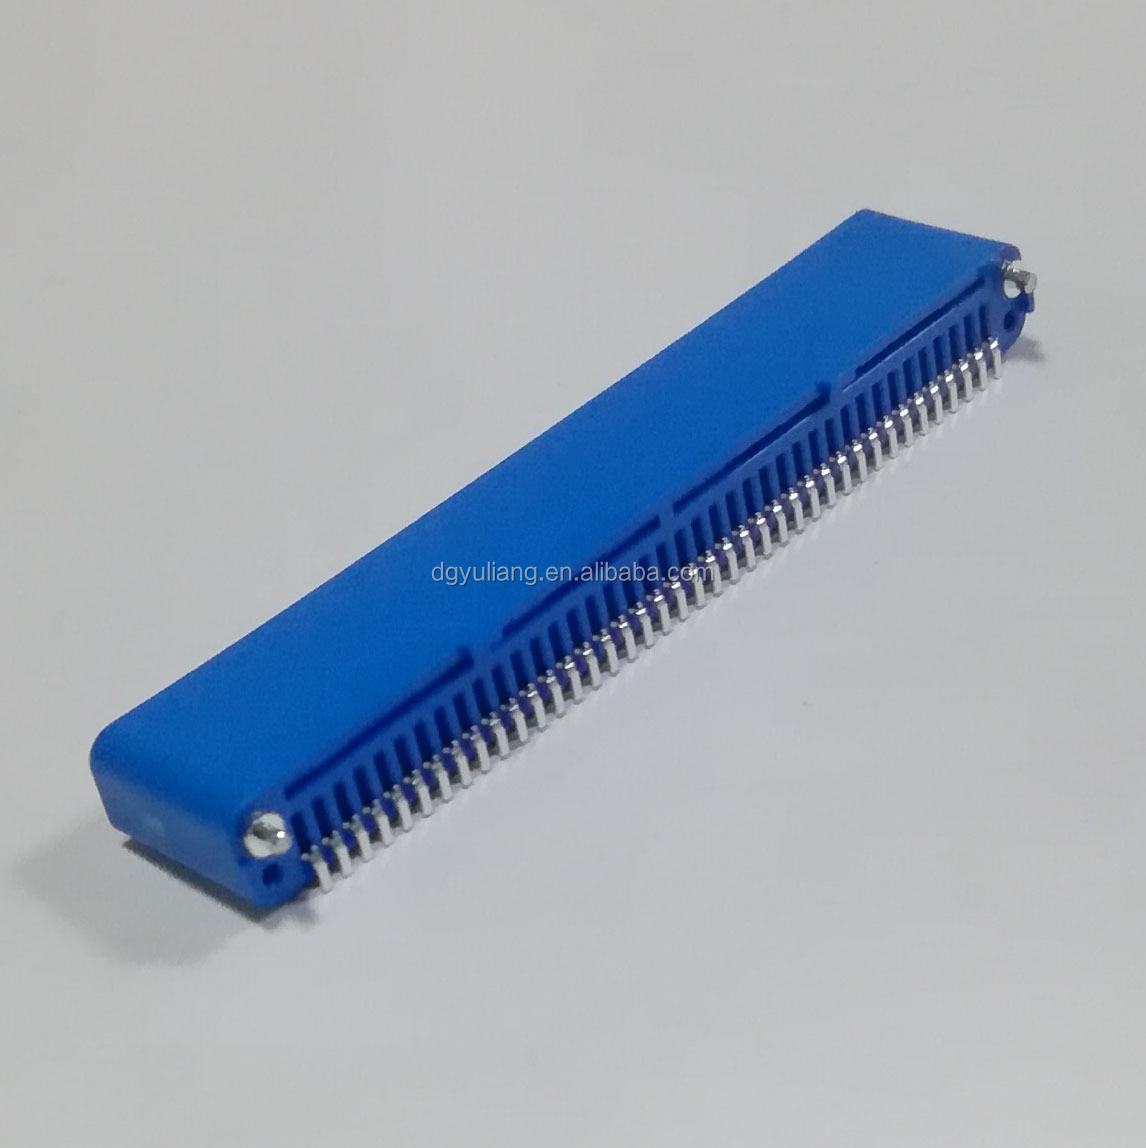 Blue 1.27mm 40p SMT 180 degree Micro bit connector for BBC Micro bit socket for Raspberry Arduino